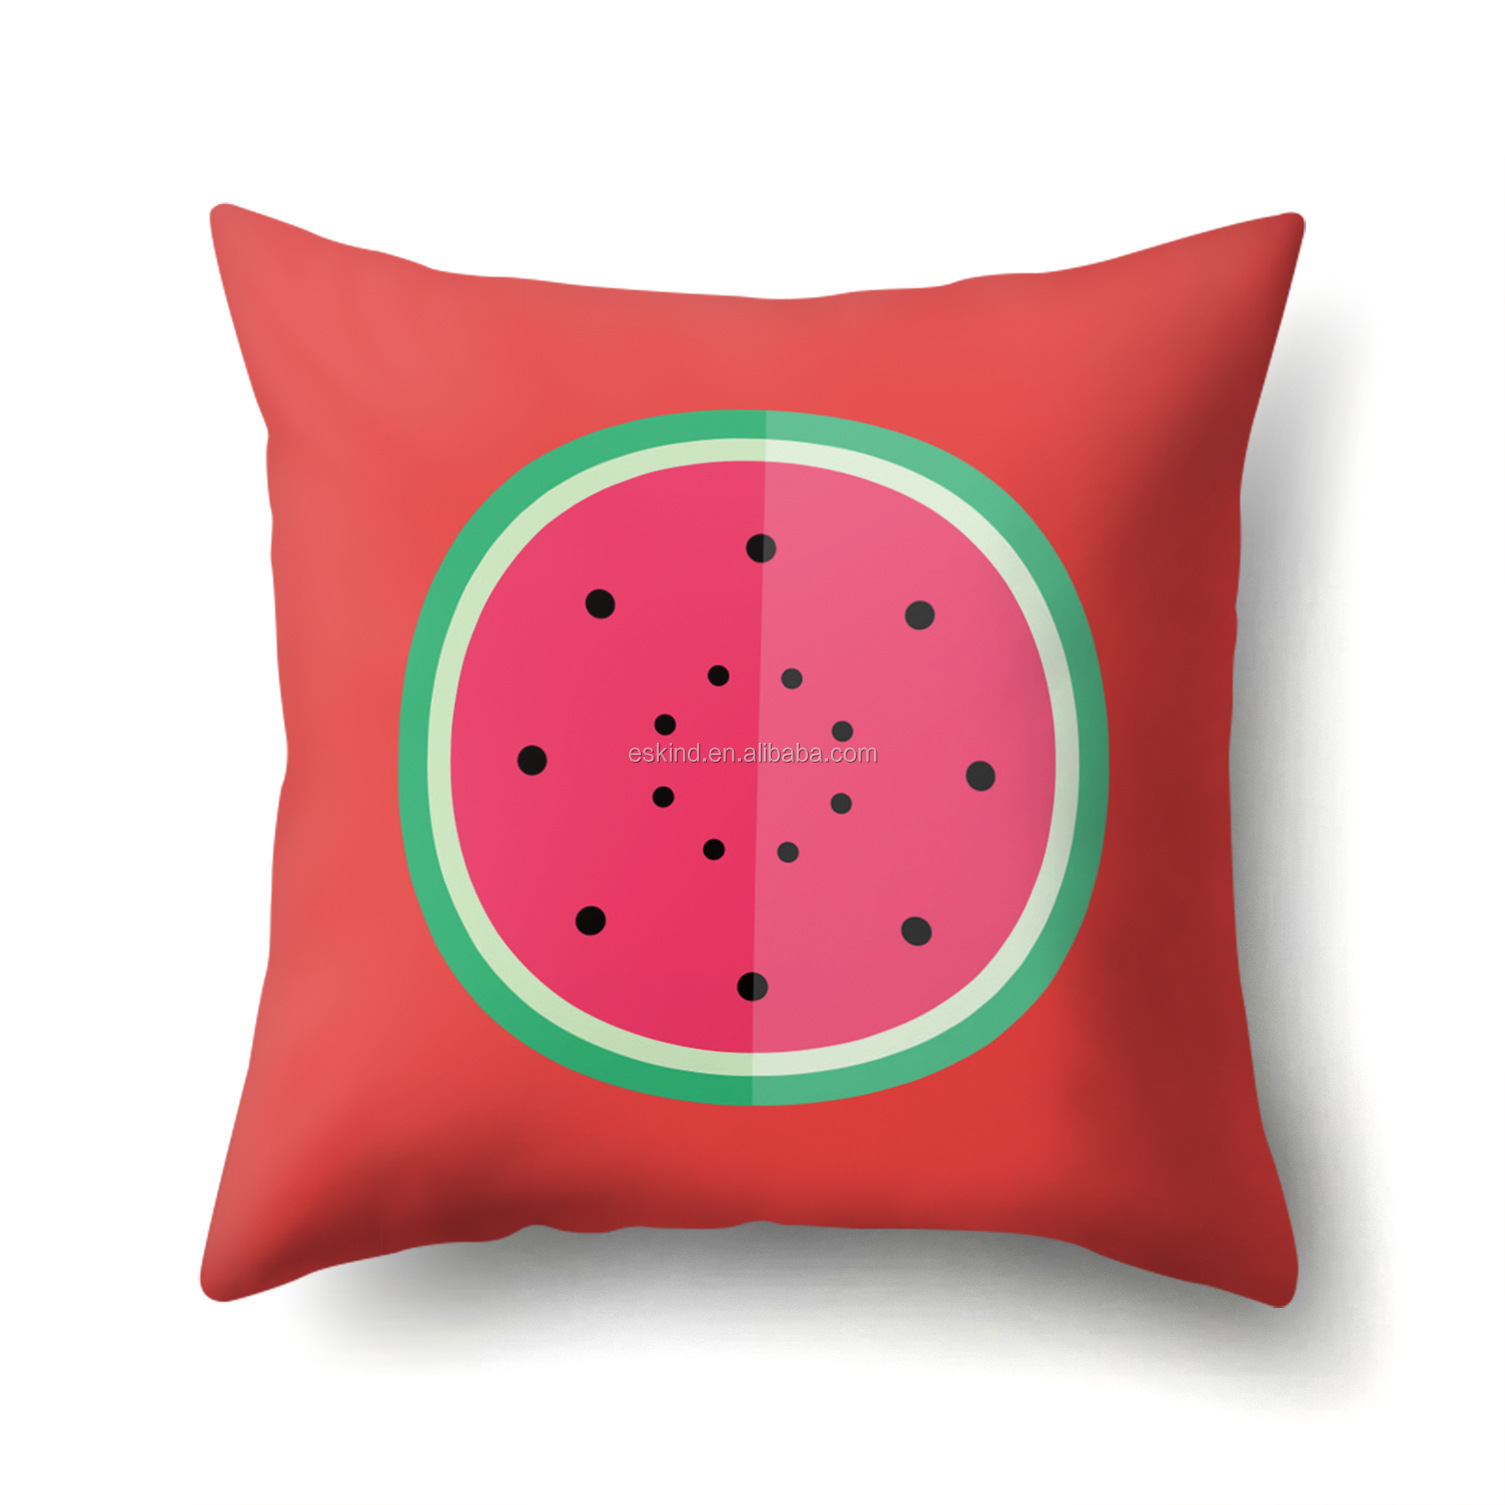 send inquiry get free samplefruit neck pillow cover summer watermelon strawberry pillow inserts 16x16 cooling pillow carry bags buy fruit neck